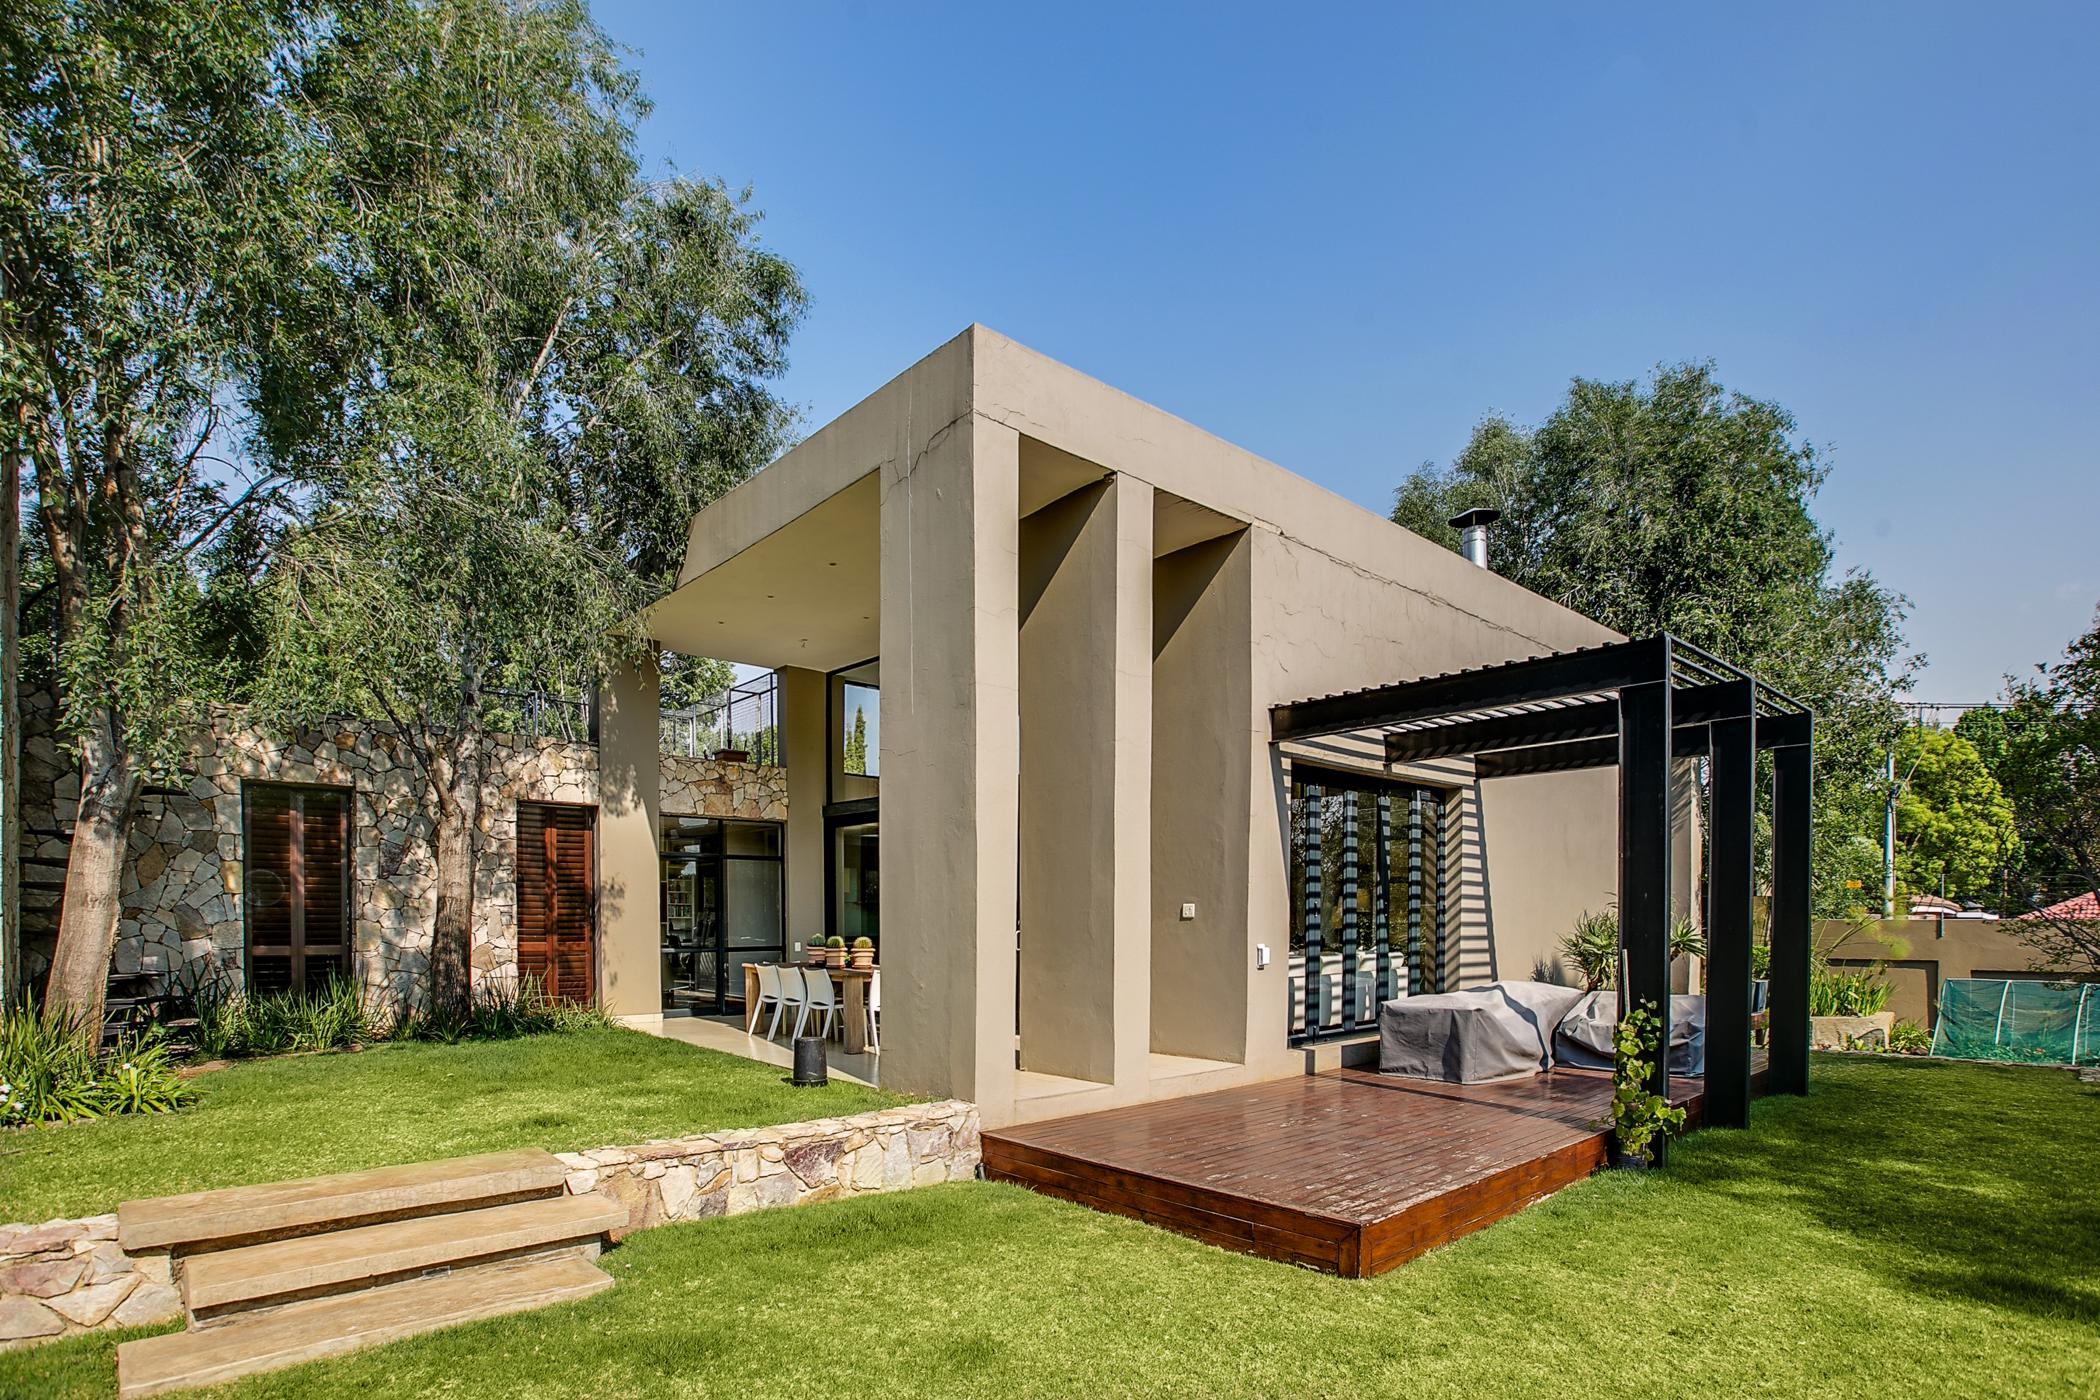 https://listing.pamgolding.co.za/images/properties/201902/1274250/H/1274250_H_21.jpg